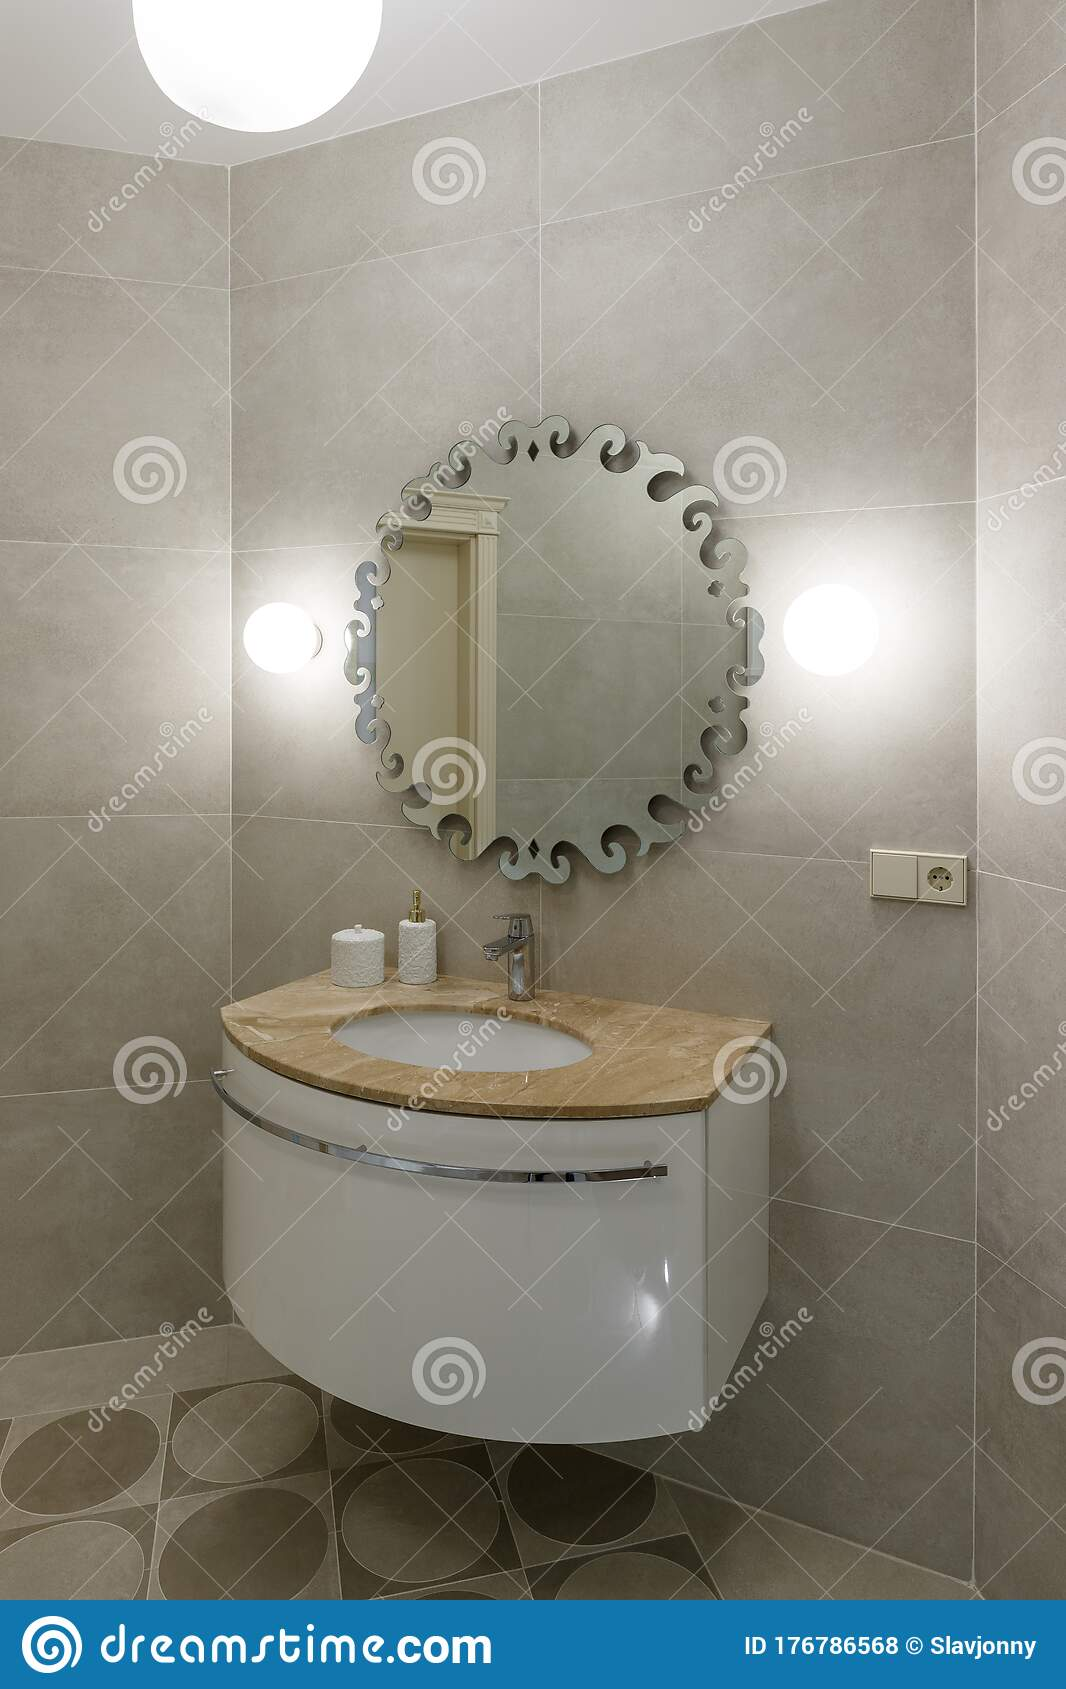 Marble Sink Chrome Faucet Large Mirror And Bathroom Accessories Modern Bathroom Design Stock Photo Image Of Decoration Decor 176786568